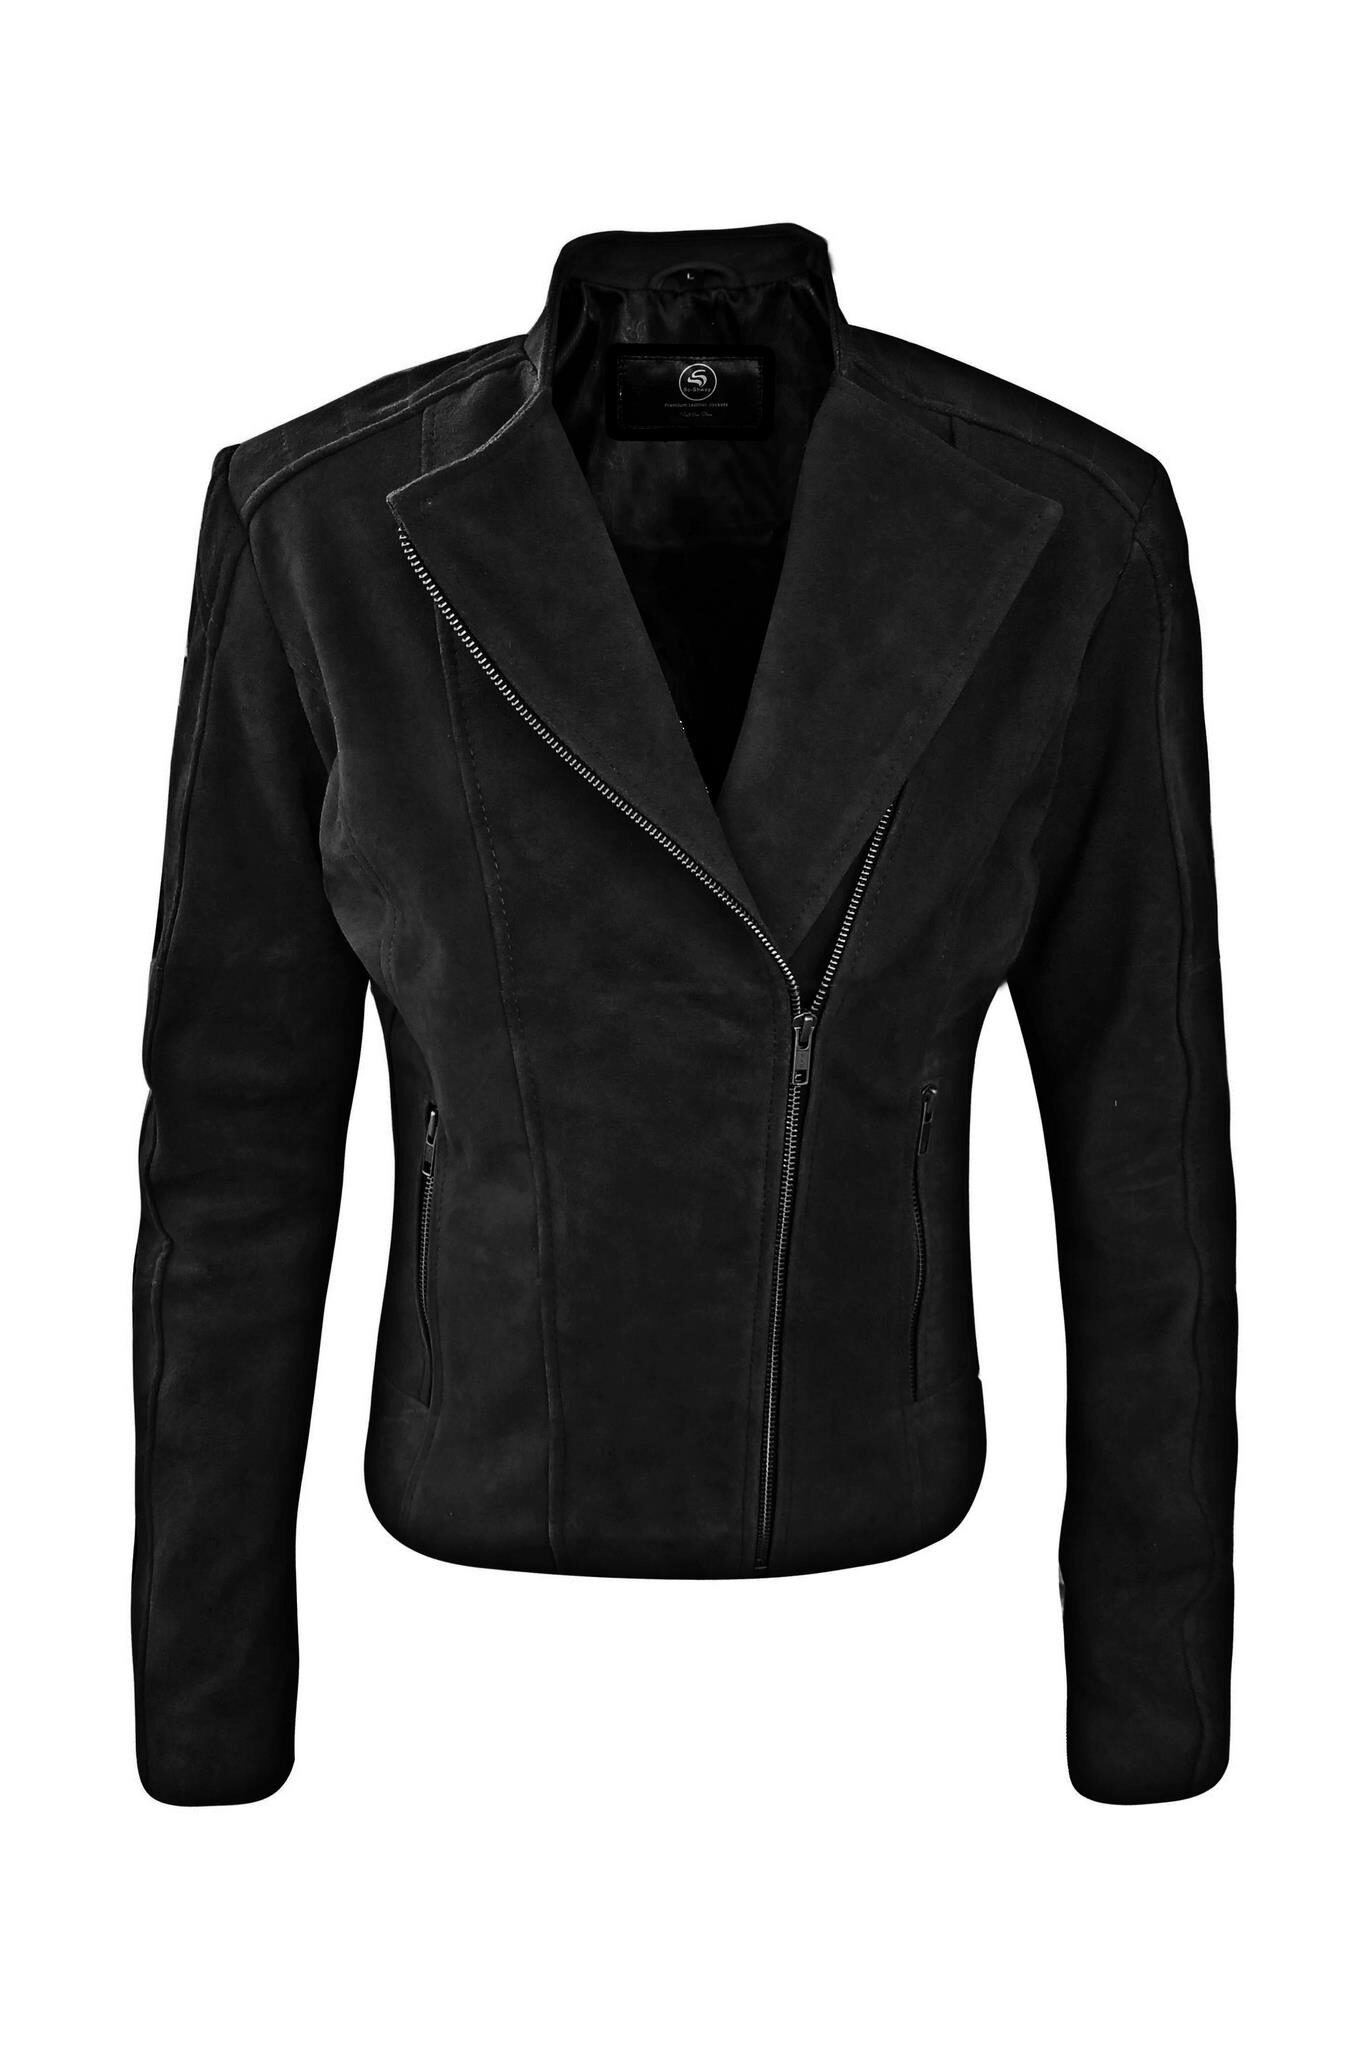 Womens black suede leather jacket-5